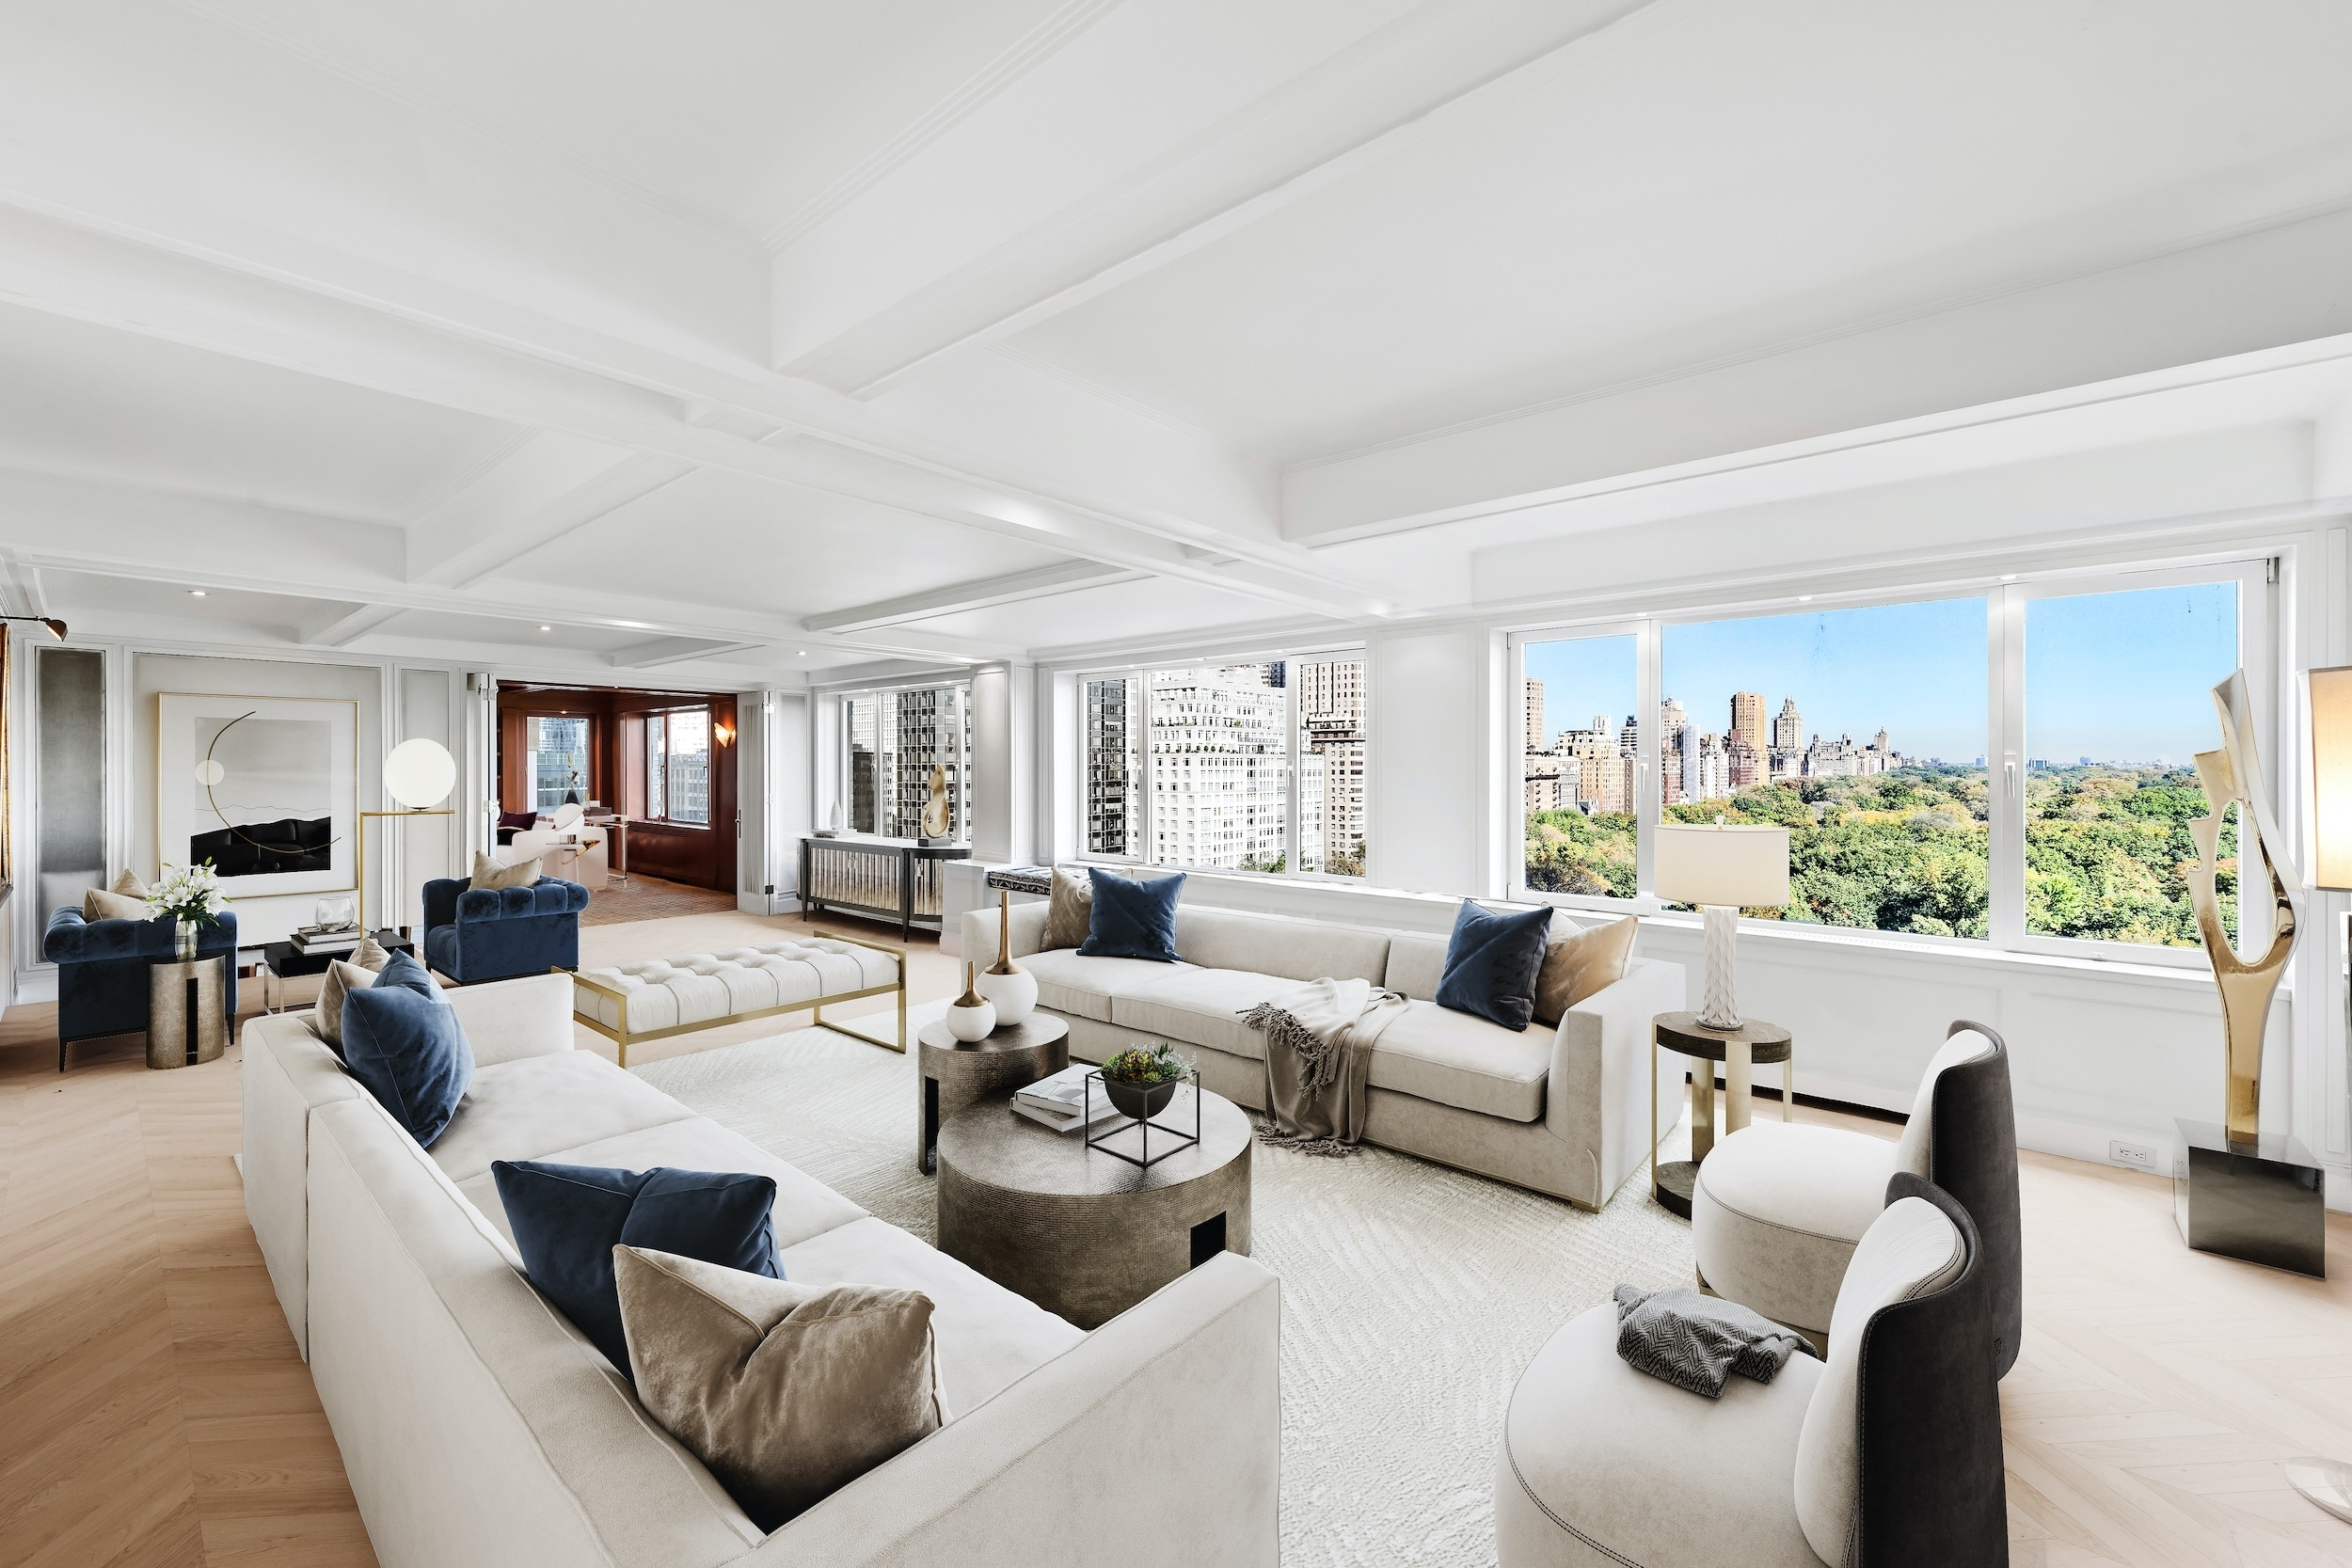 Property at 230 Central Park South, PH16 Central Park South, New York, NY 10019